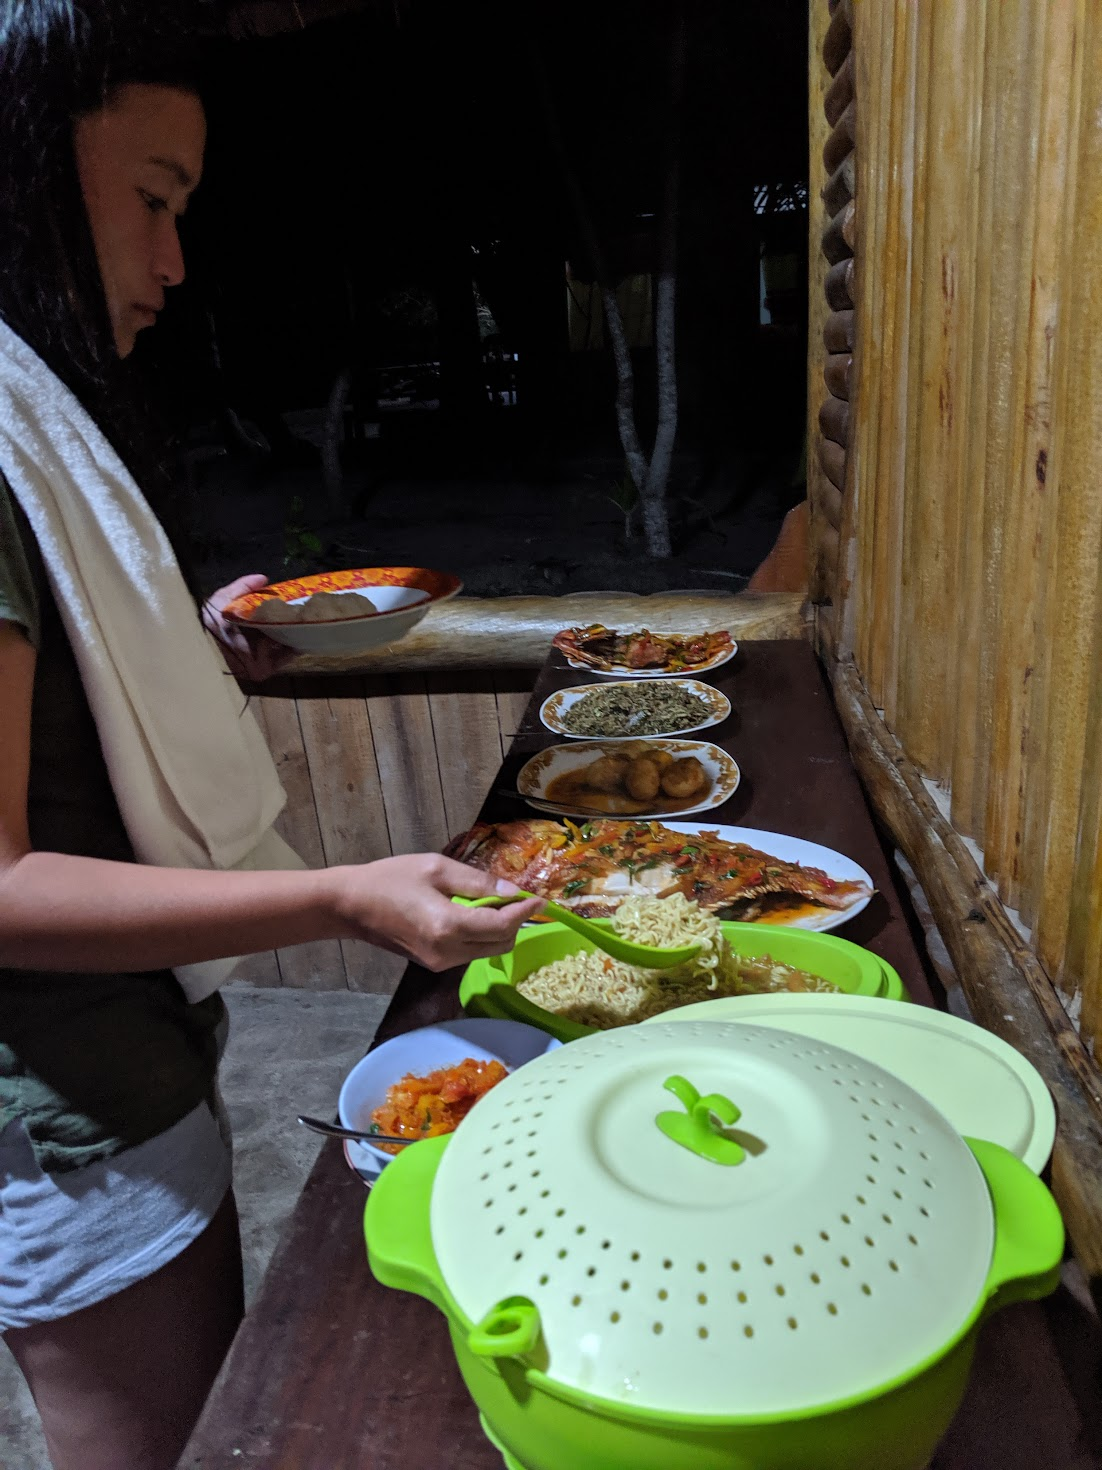 Typical dishes served at Raja Ampat homestay